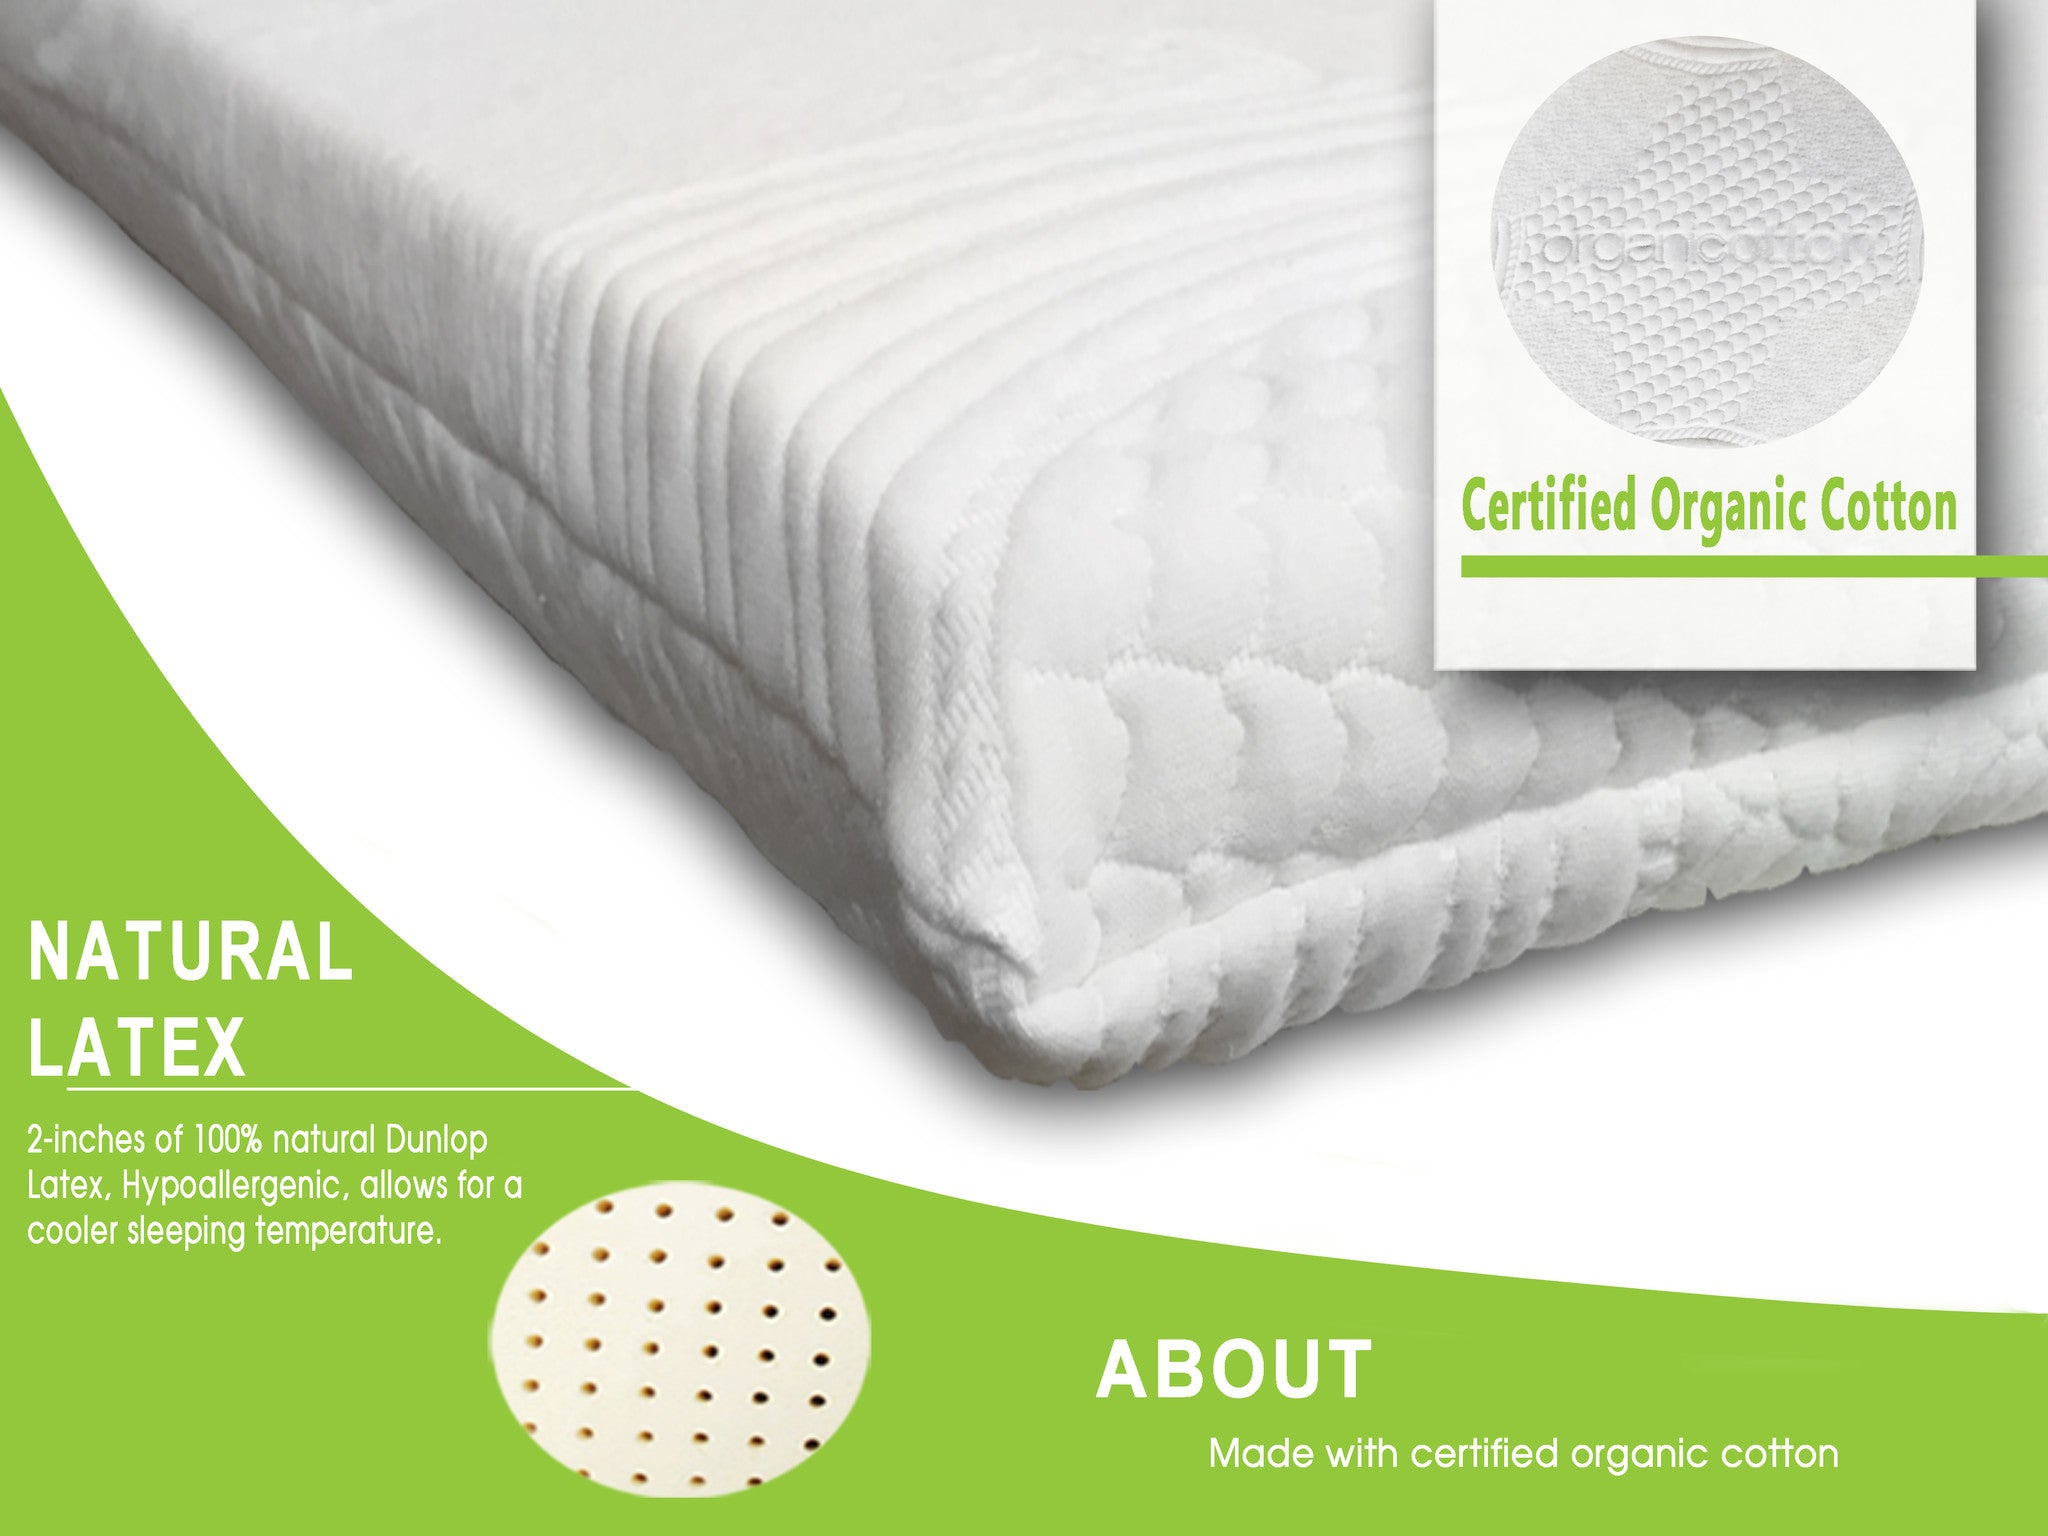 topper mattress inch plush overstock today product top queen foam pillow shipping nuform garden quilted home size free